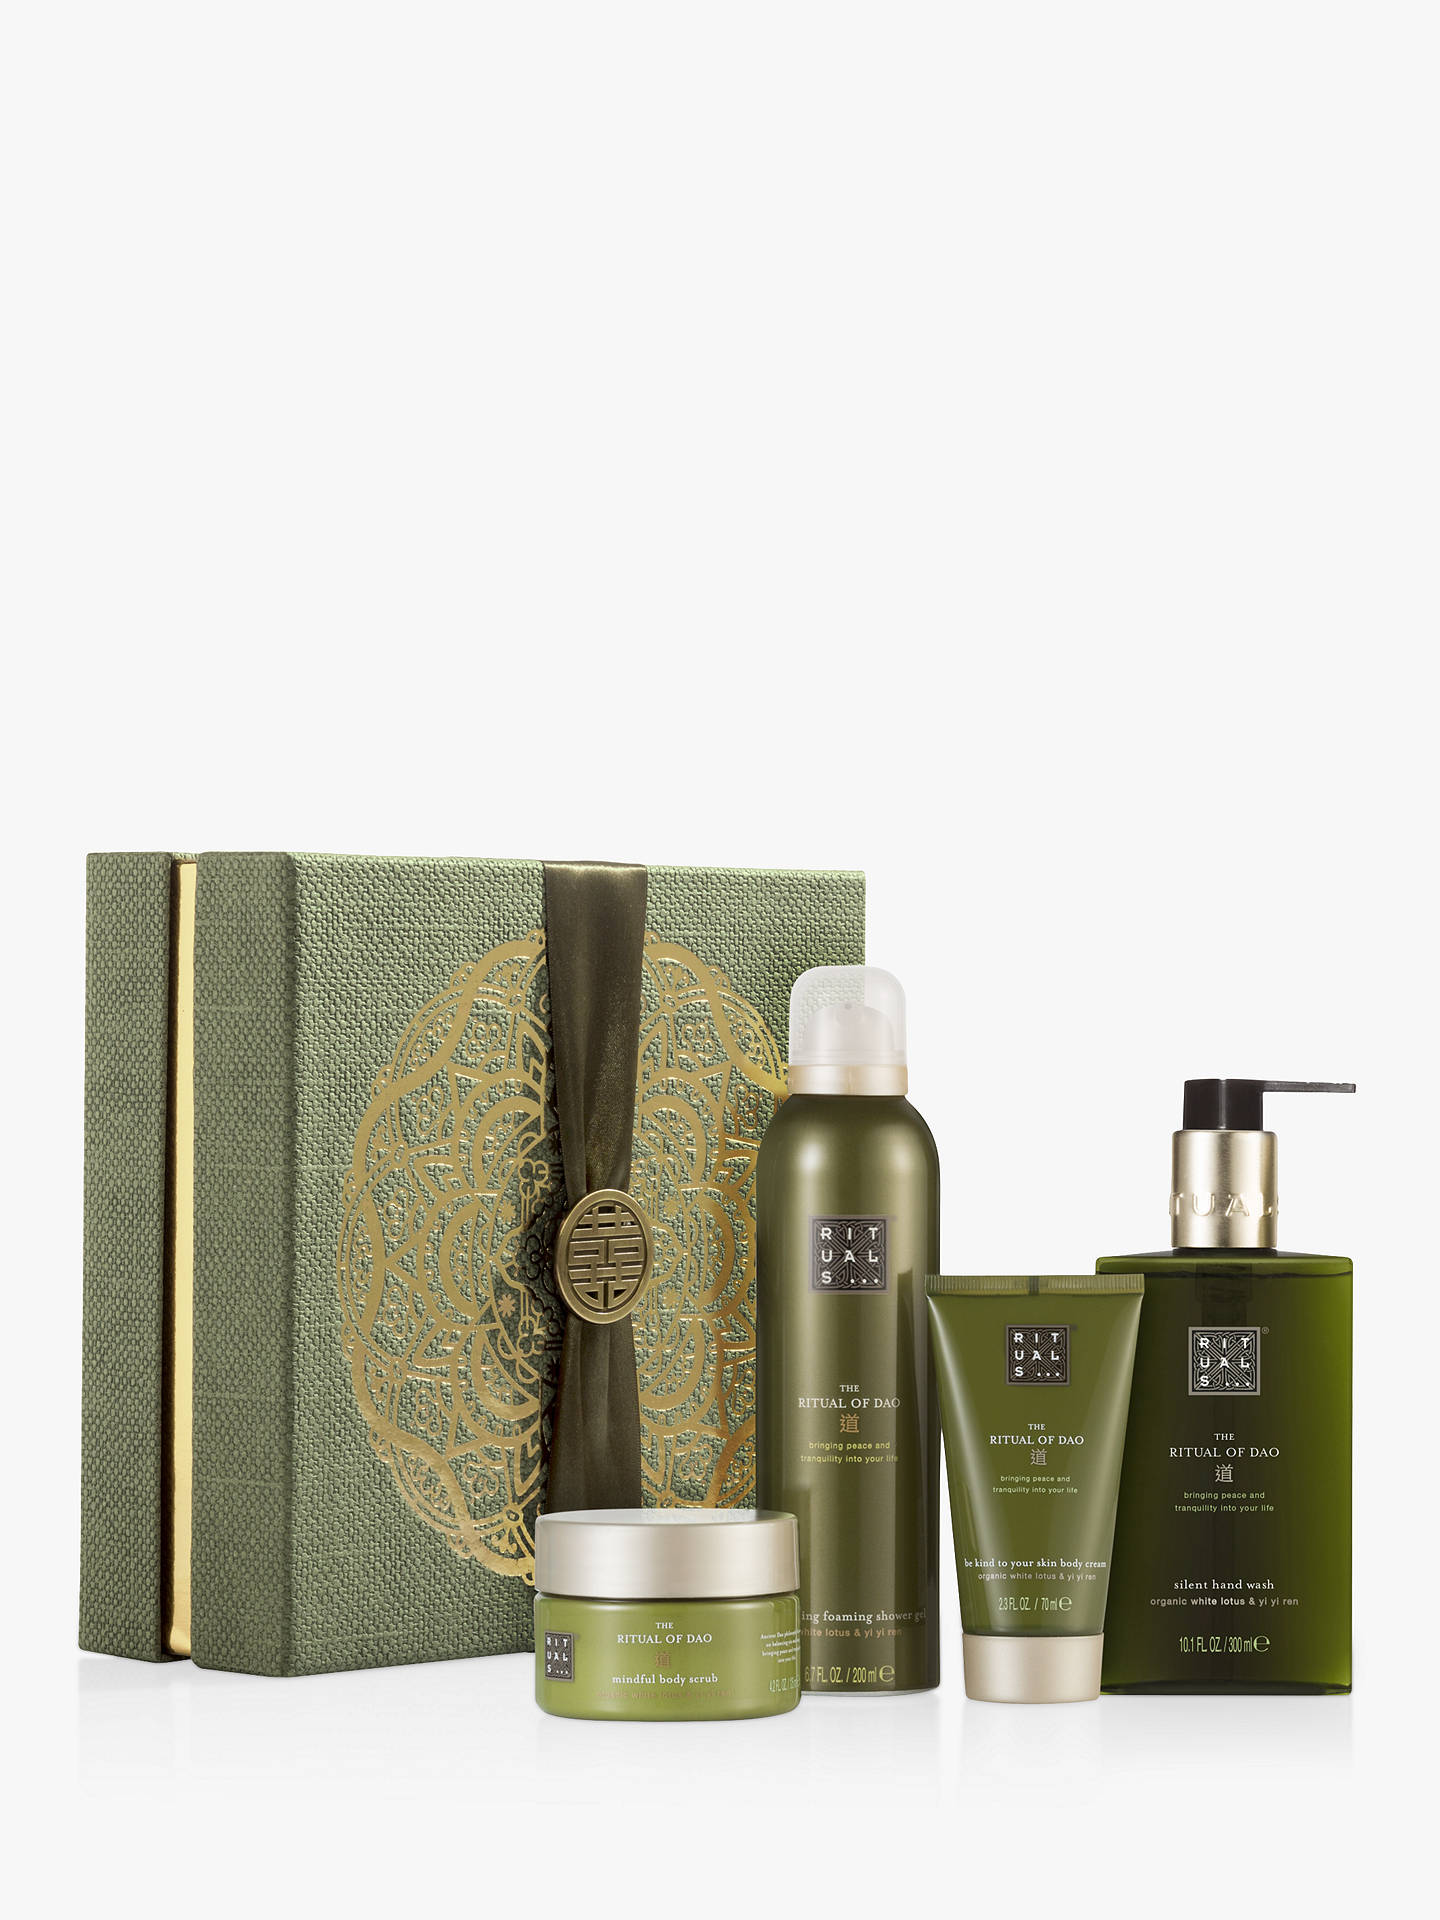 BuyRituals The Ritual of Dao - Calming Ritual Medium Body Care Gift Set Online at johnlewis.com